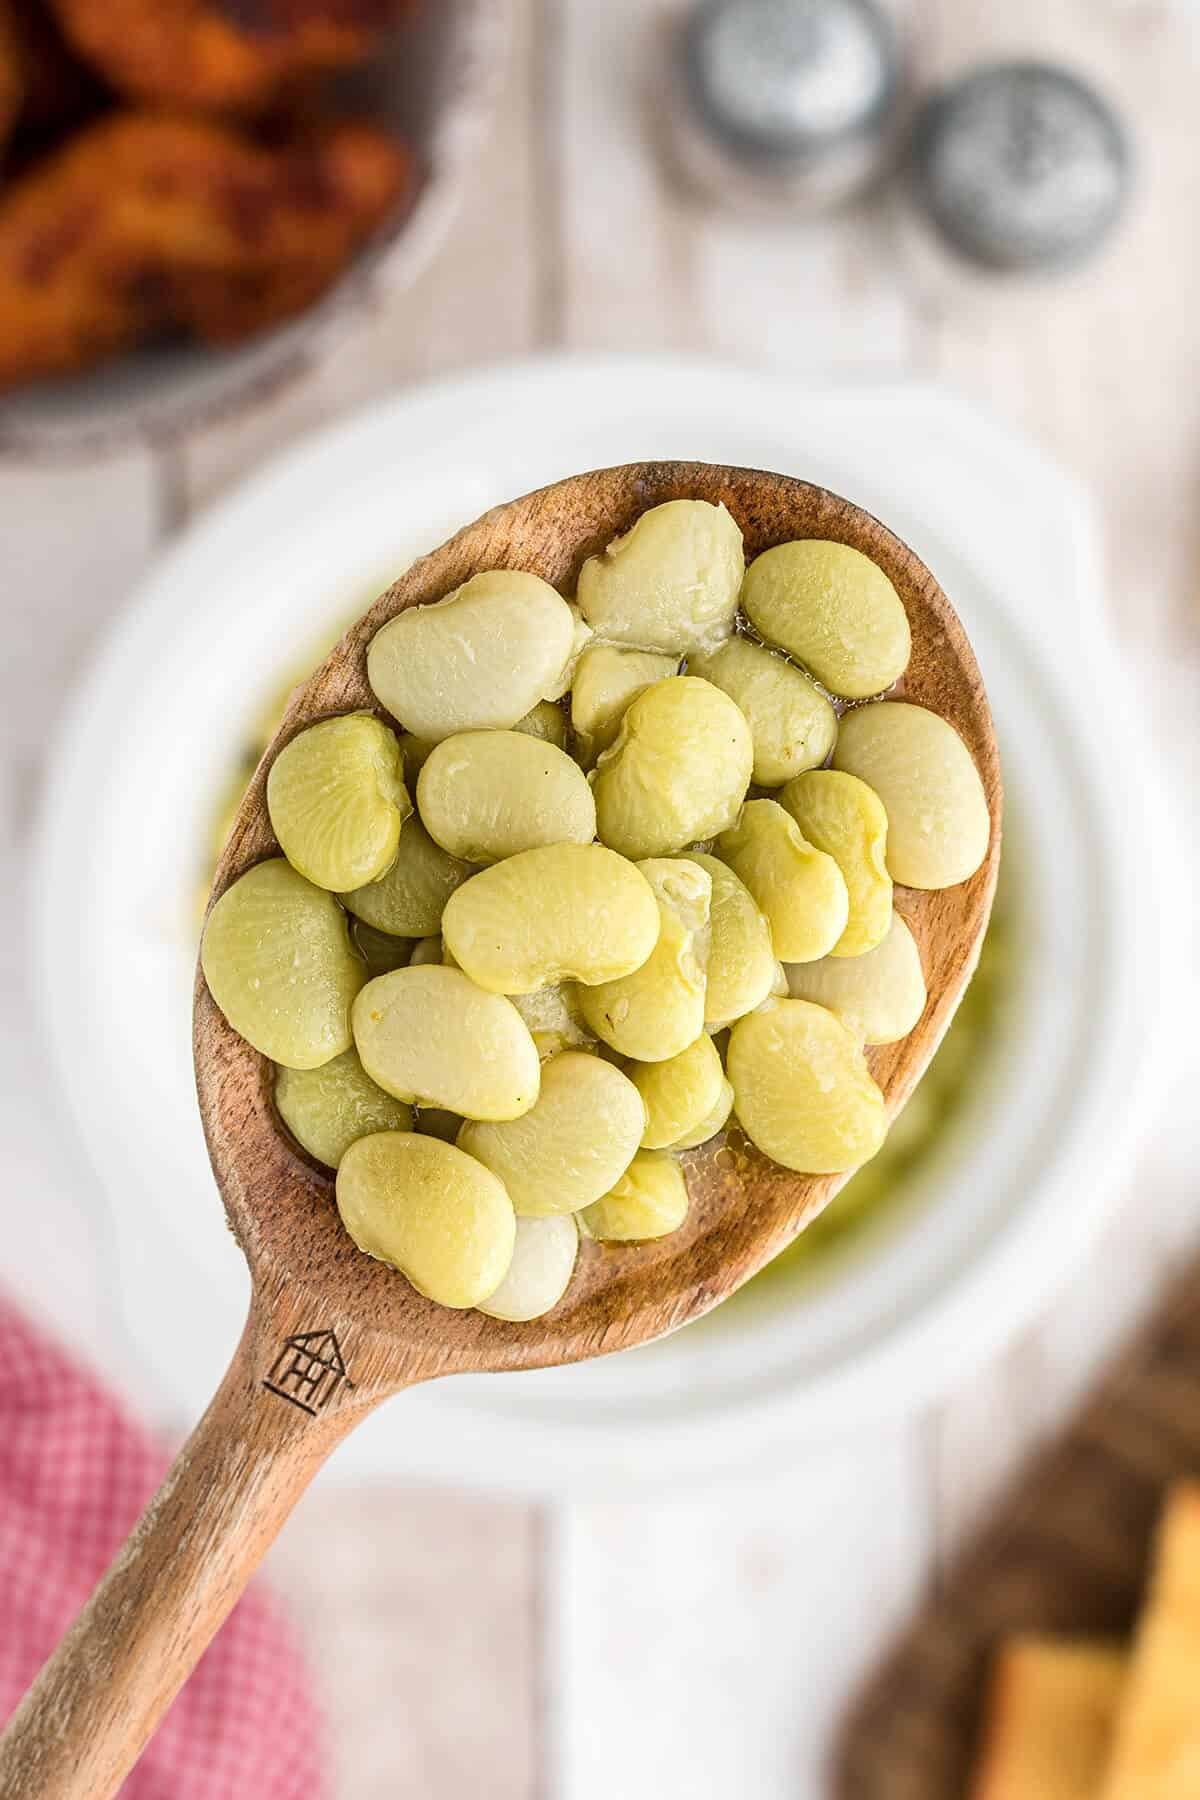 Butter beans in a wooden spoon.